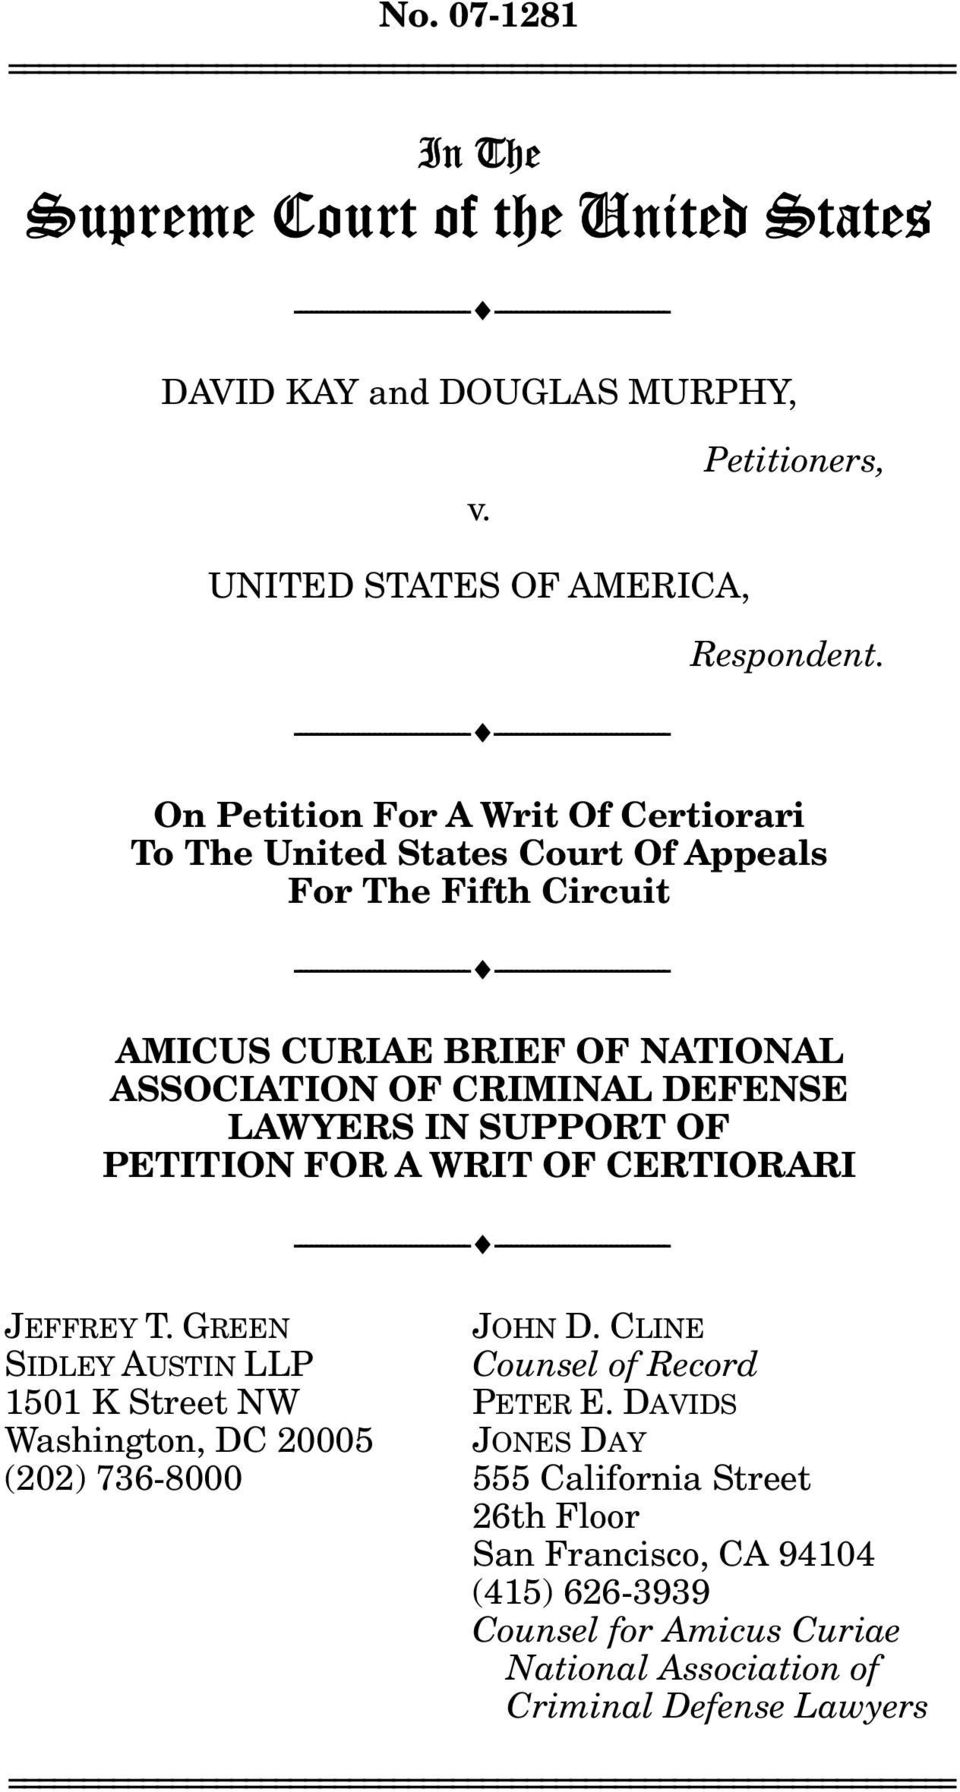 On Petition For A Writ Of Certiorari To The United States Court Of Appeals For The Fifth Circuit --------------------------------- --------------------------------- AMICUS CURIAE BRIEF OF NATIONAL